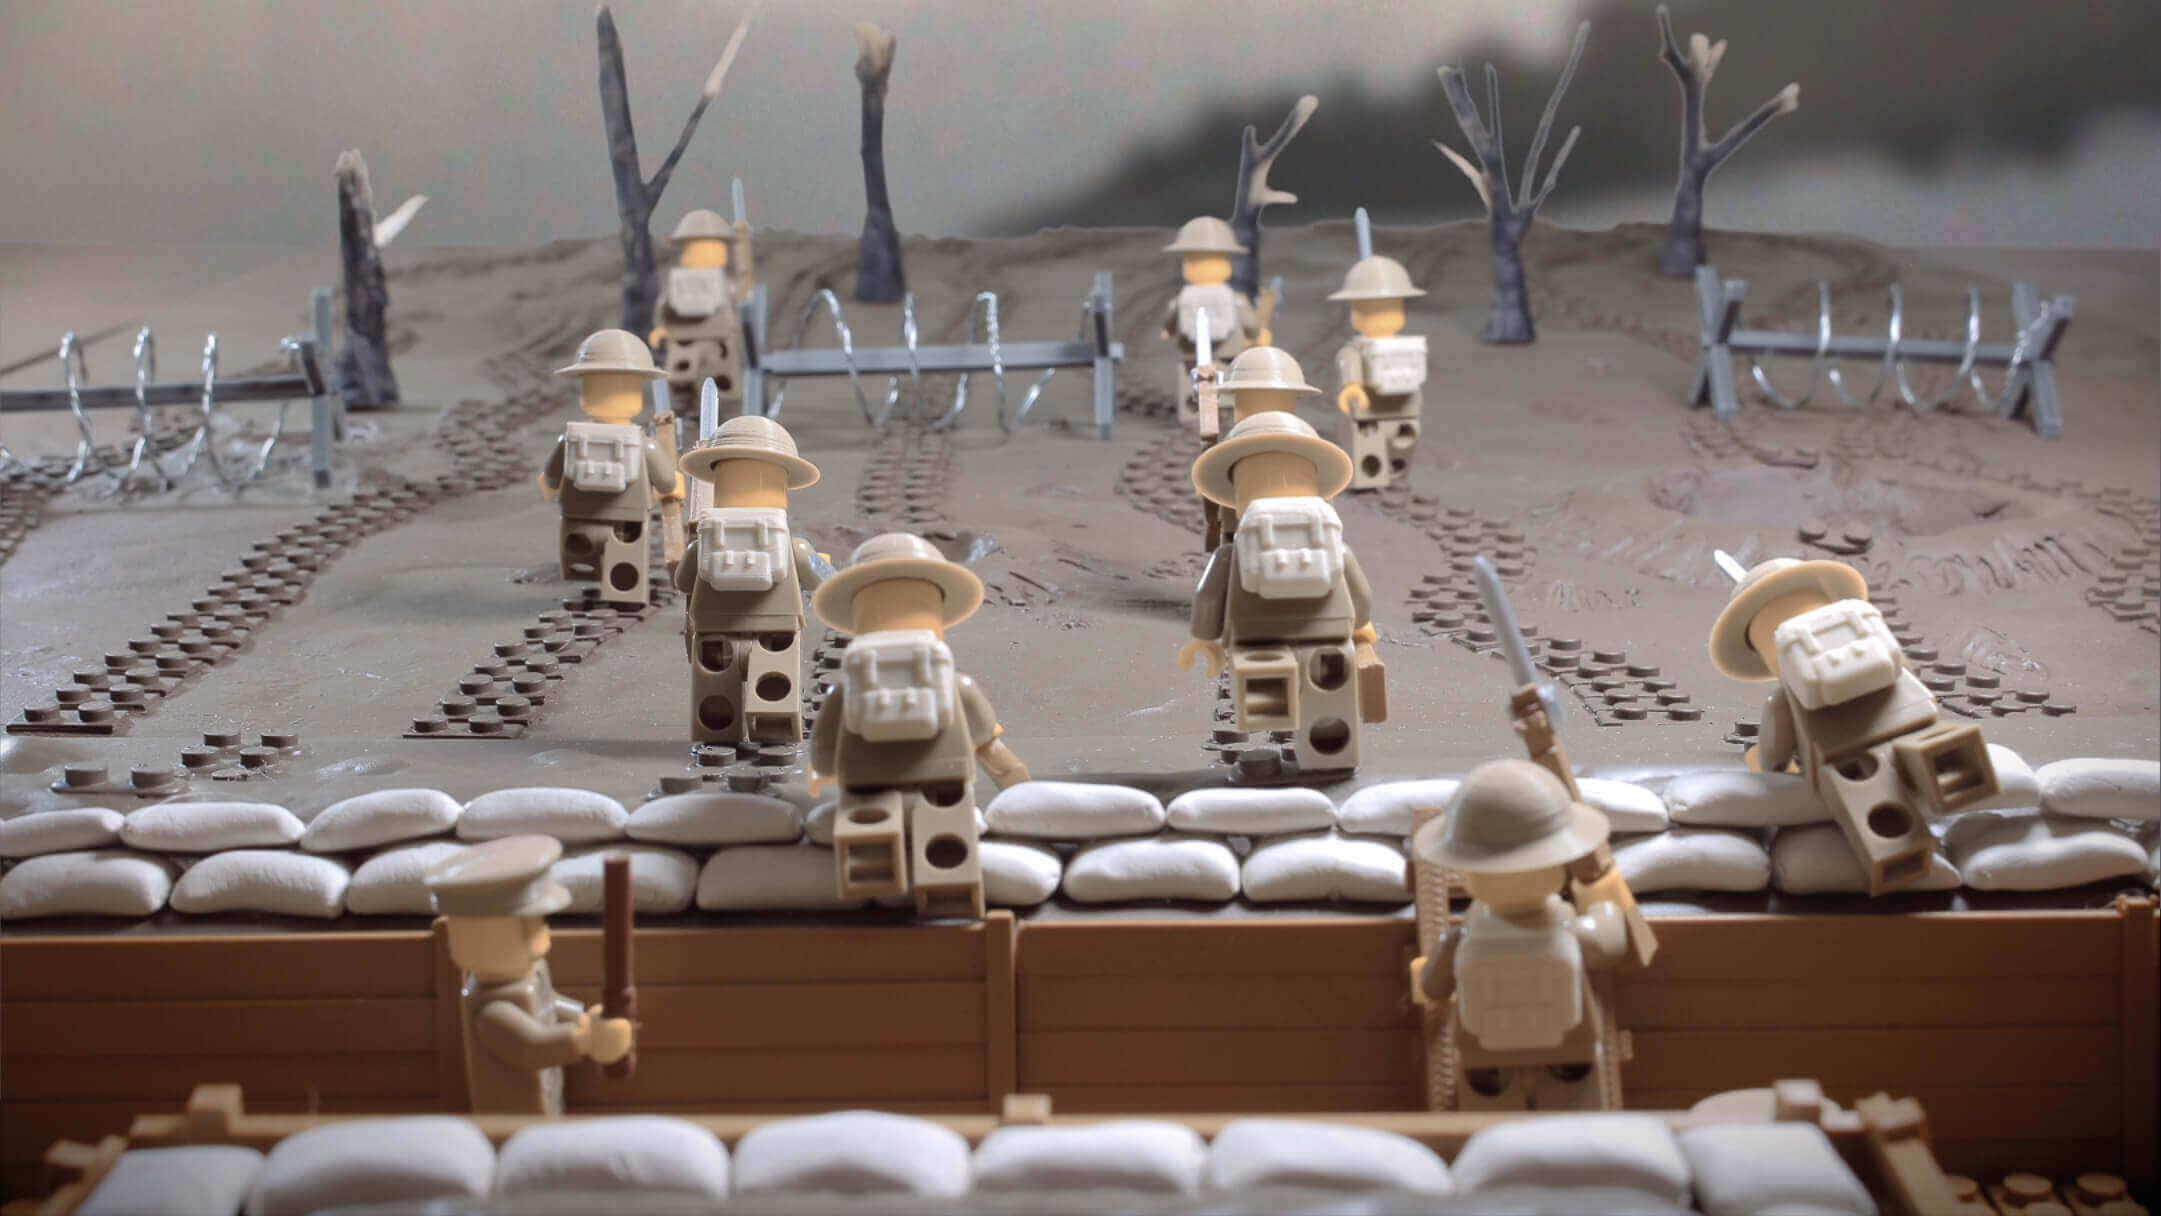 Minifig Battlefields recreate WWI Trenches with LEGO and 3D Printing | All3DP